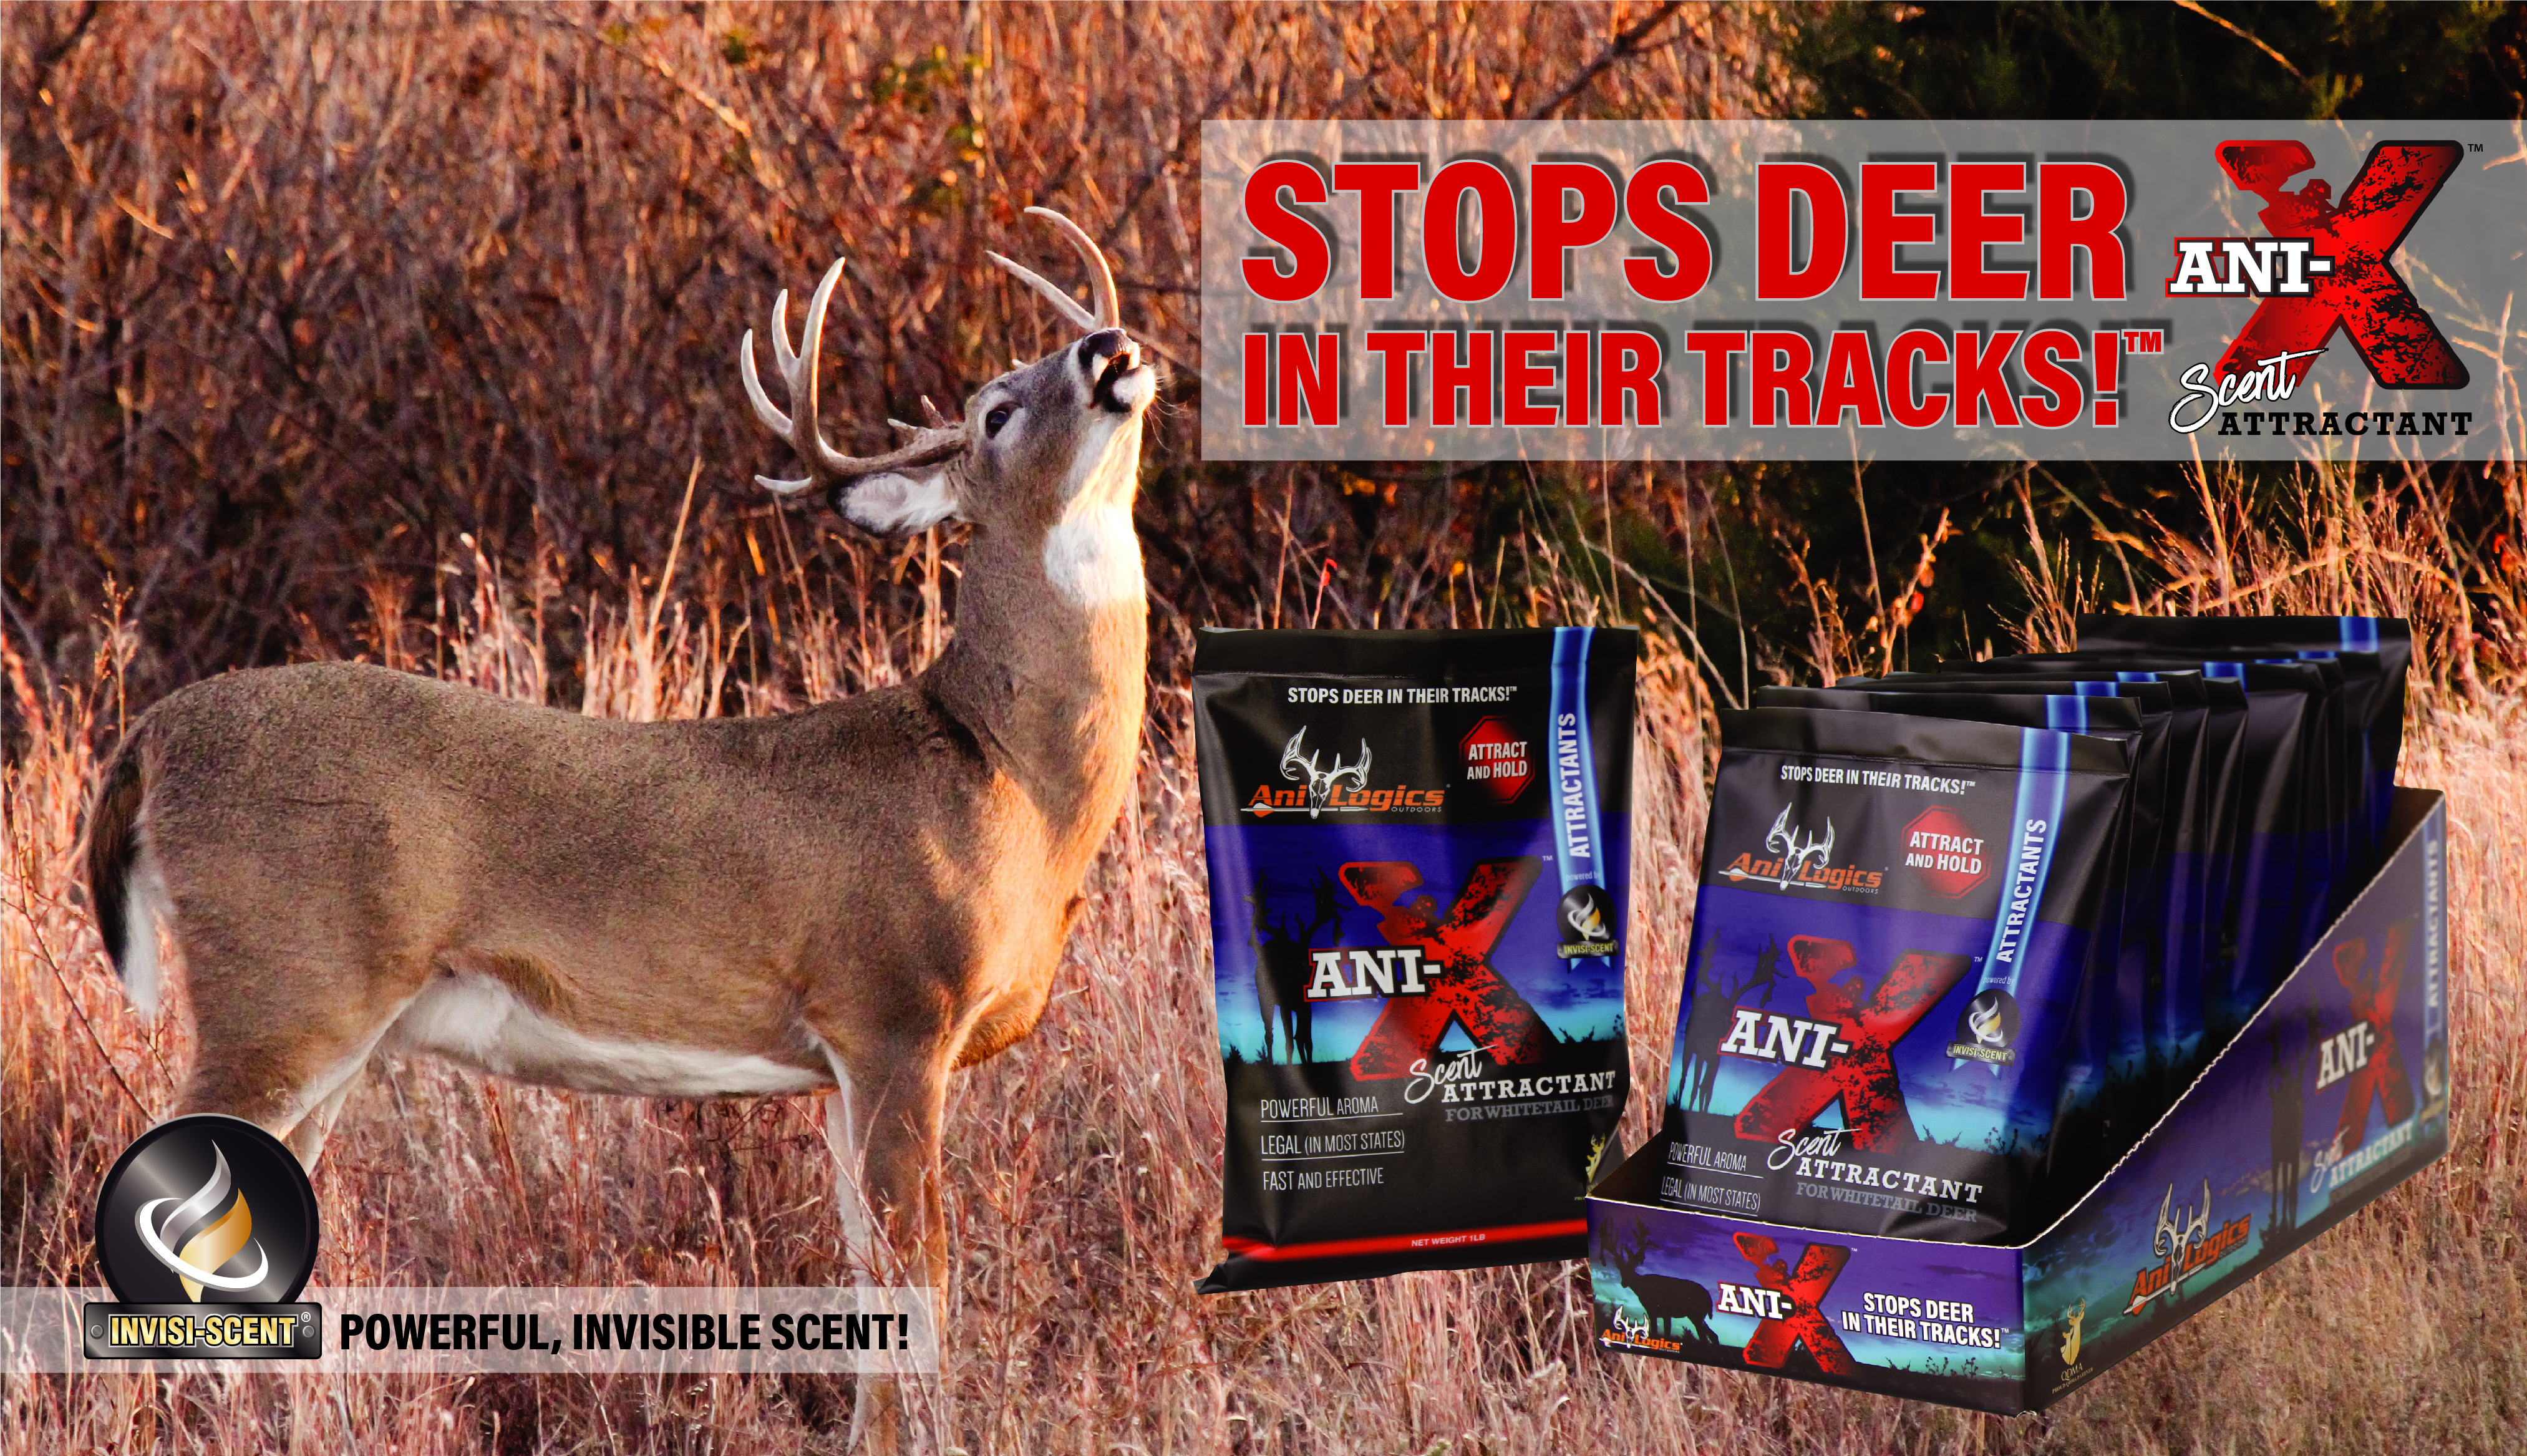 ANI-X™ SCENT ATTRACTANT – STOPS DEER IN THEIR TRACKS™